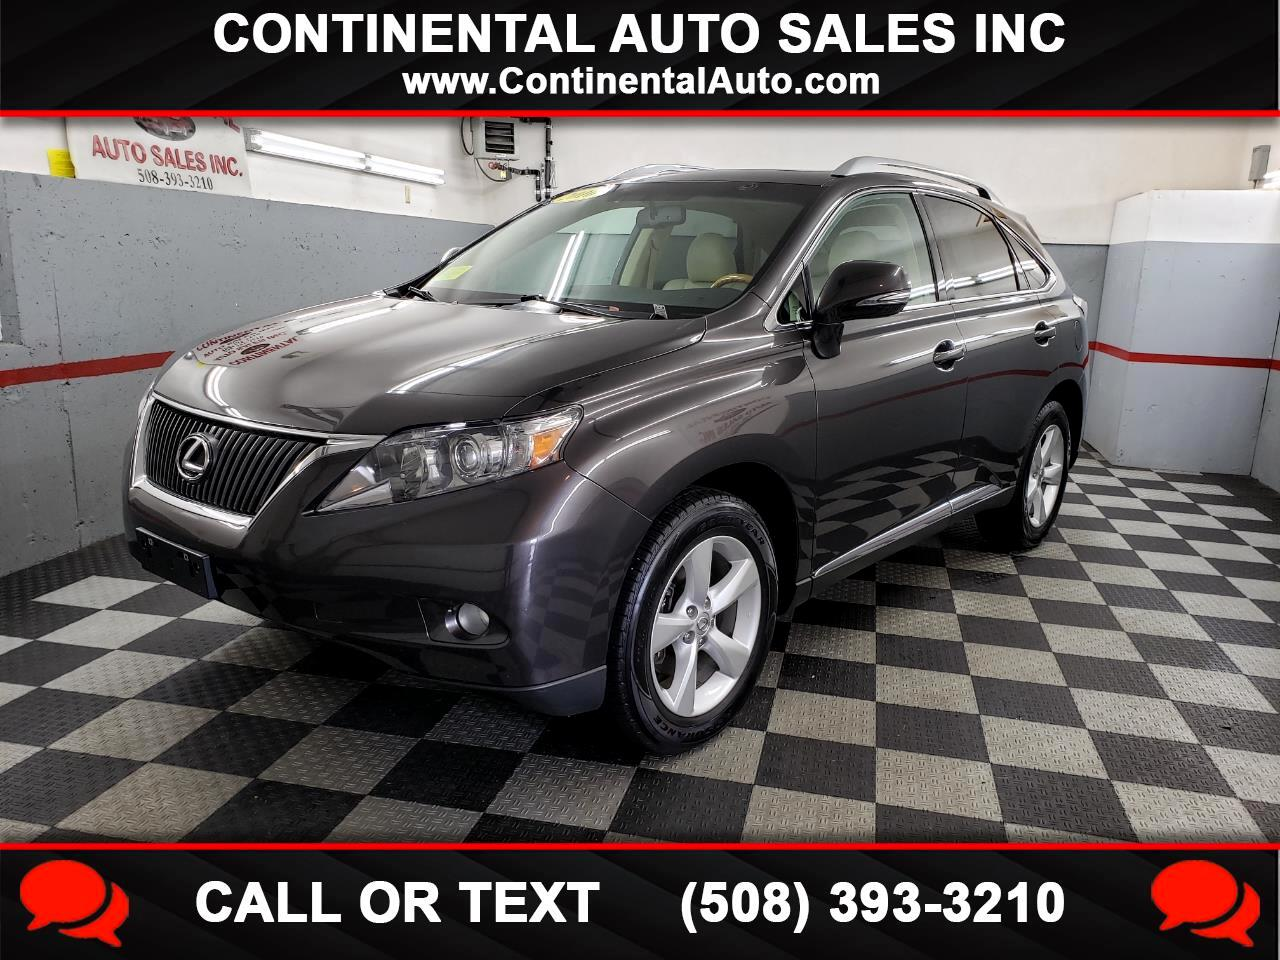 Used 2010 Lexus RX 350 for Sale in Northborough, MA 01532